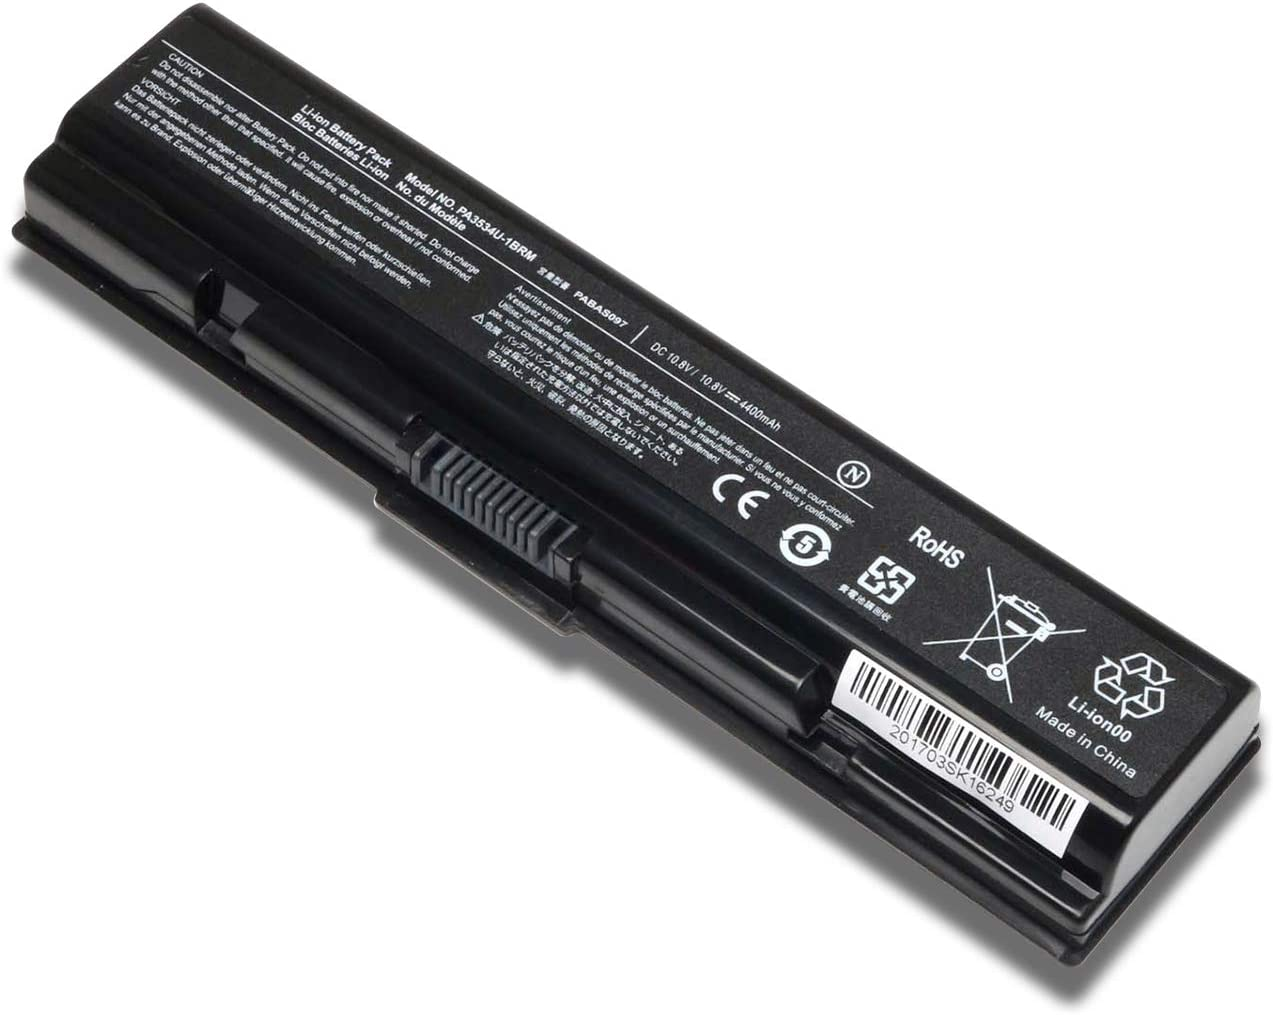 New PA3534U-1BRS Replacement Laptop Battery for Toshiba PA3727U-1BRS PA3533U-1BRS PA3534U-1BAS PA3535U-1BRS PA3535U-1BAS Fits Satellite A200 A205 A300 A305 A500 A505 L300 L305  4400mAh 10.8V